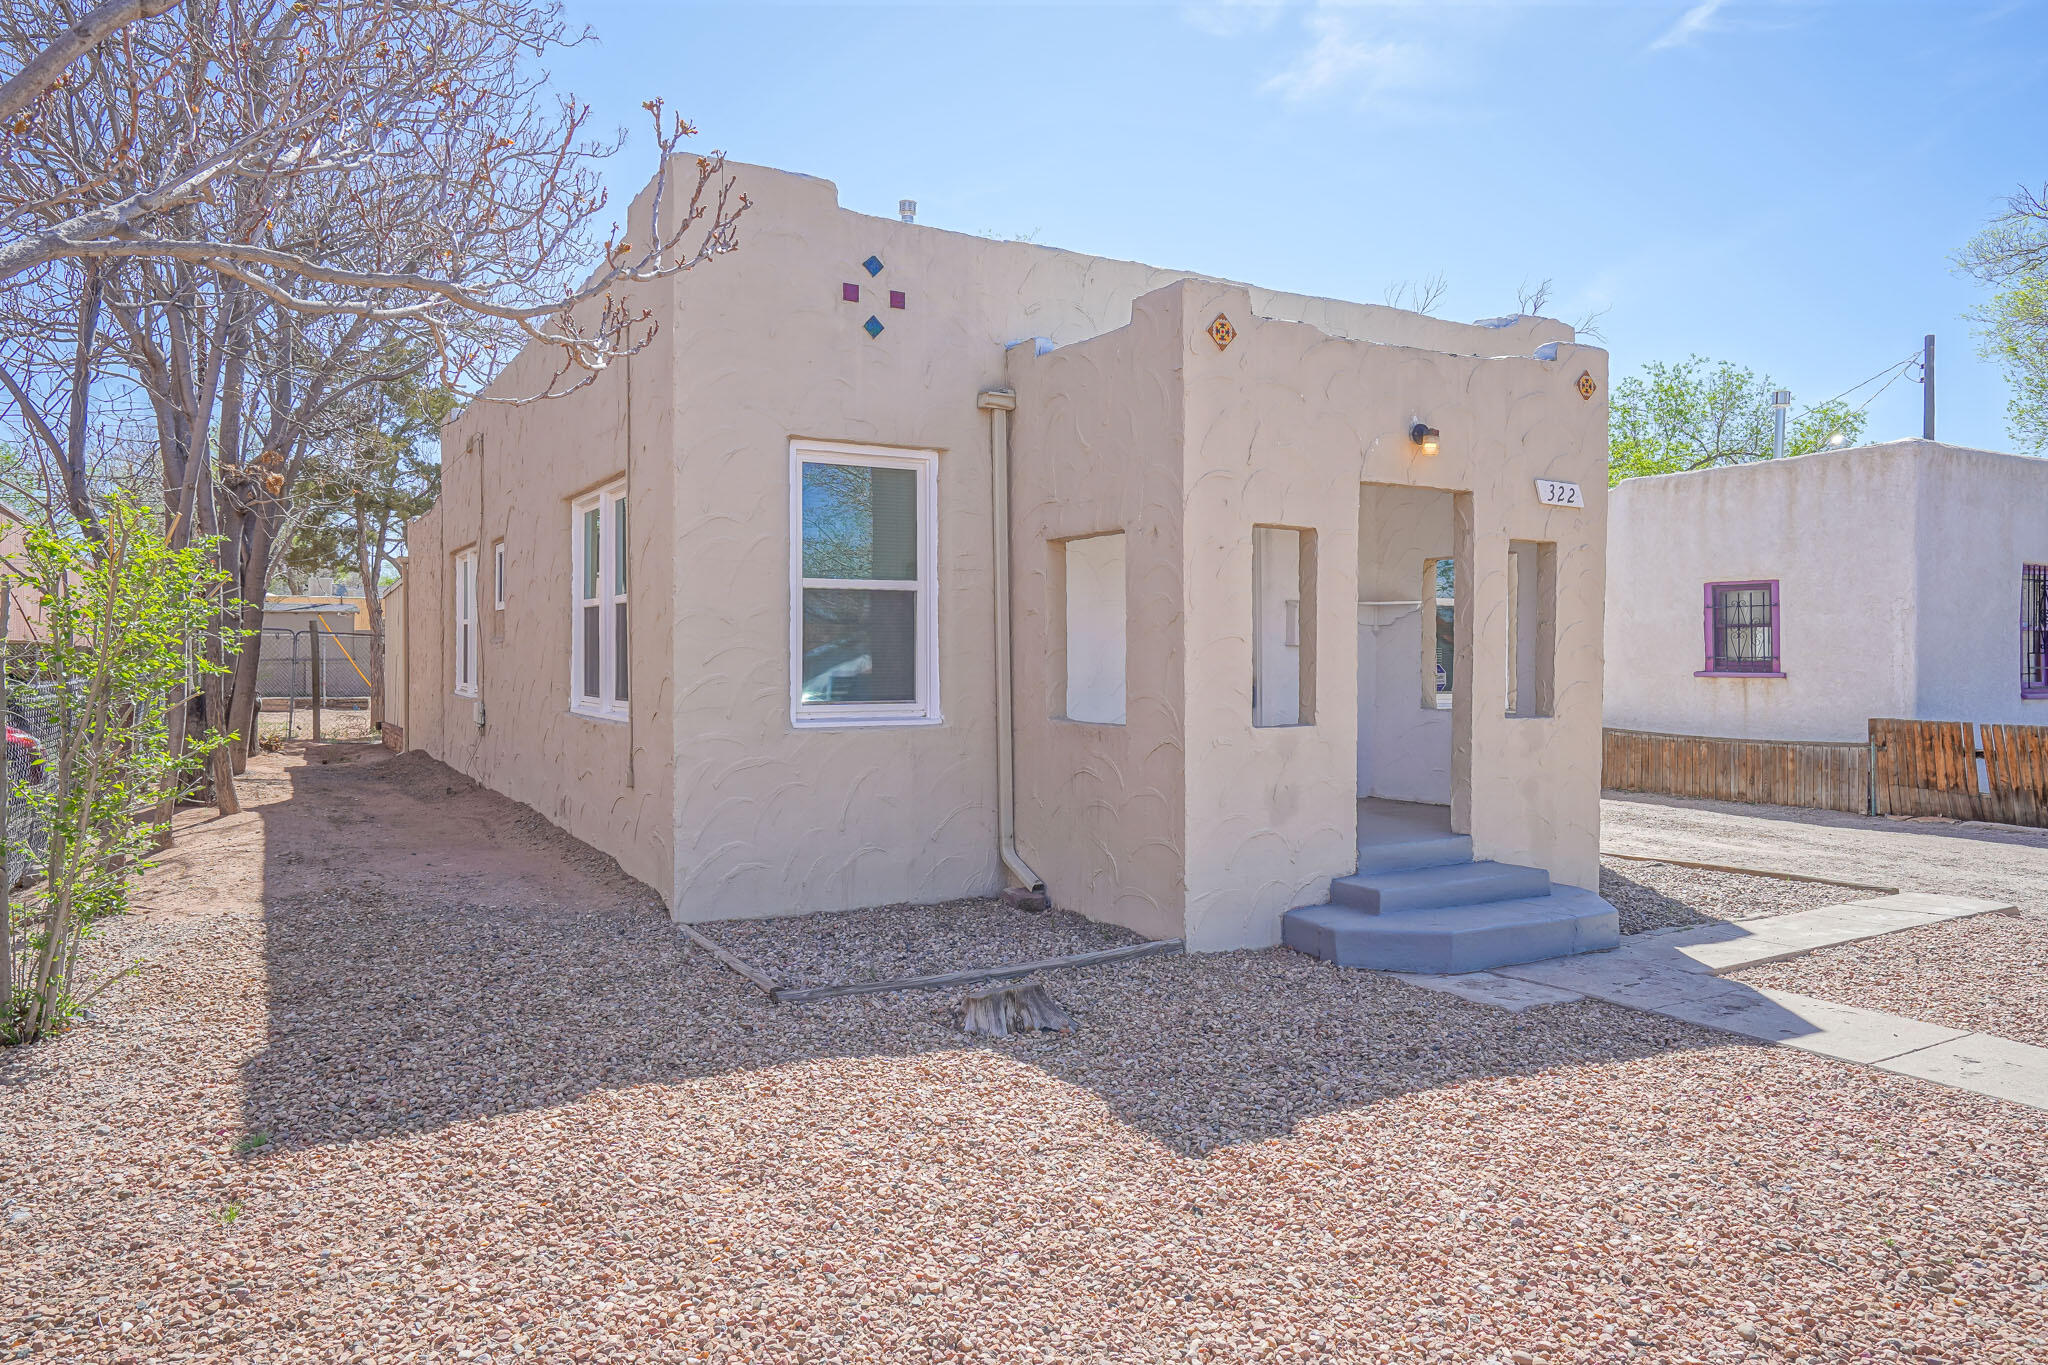 Totally updated 3 bedroom 1 bathroom home in the UNM area.  Freshly painted, newly stained oak wood floors. New kitchen cabinets, New fridge, gas range and overhead microwave.  Stacked washer and dryer.  Brand new Aero Cool 12'' evaporative cooler.  New forced air gas furnace installed in 2019 along with new 40 gallon water heater.  Updated 100 amp electrical service and additional blown in insulation.  New roof on garage and patio cover.  Zoning allows for additional units on this lot.